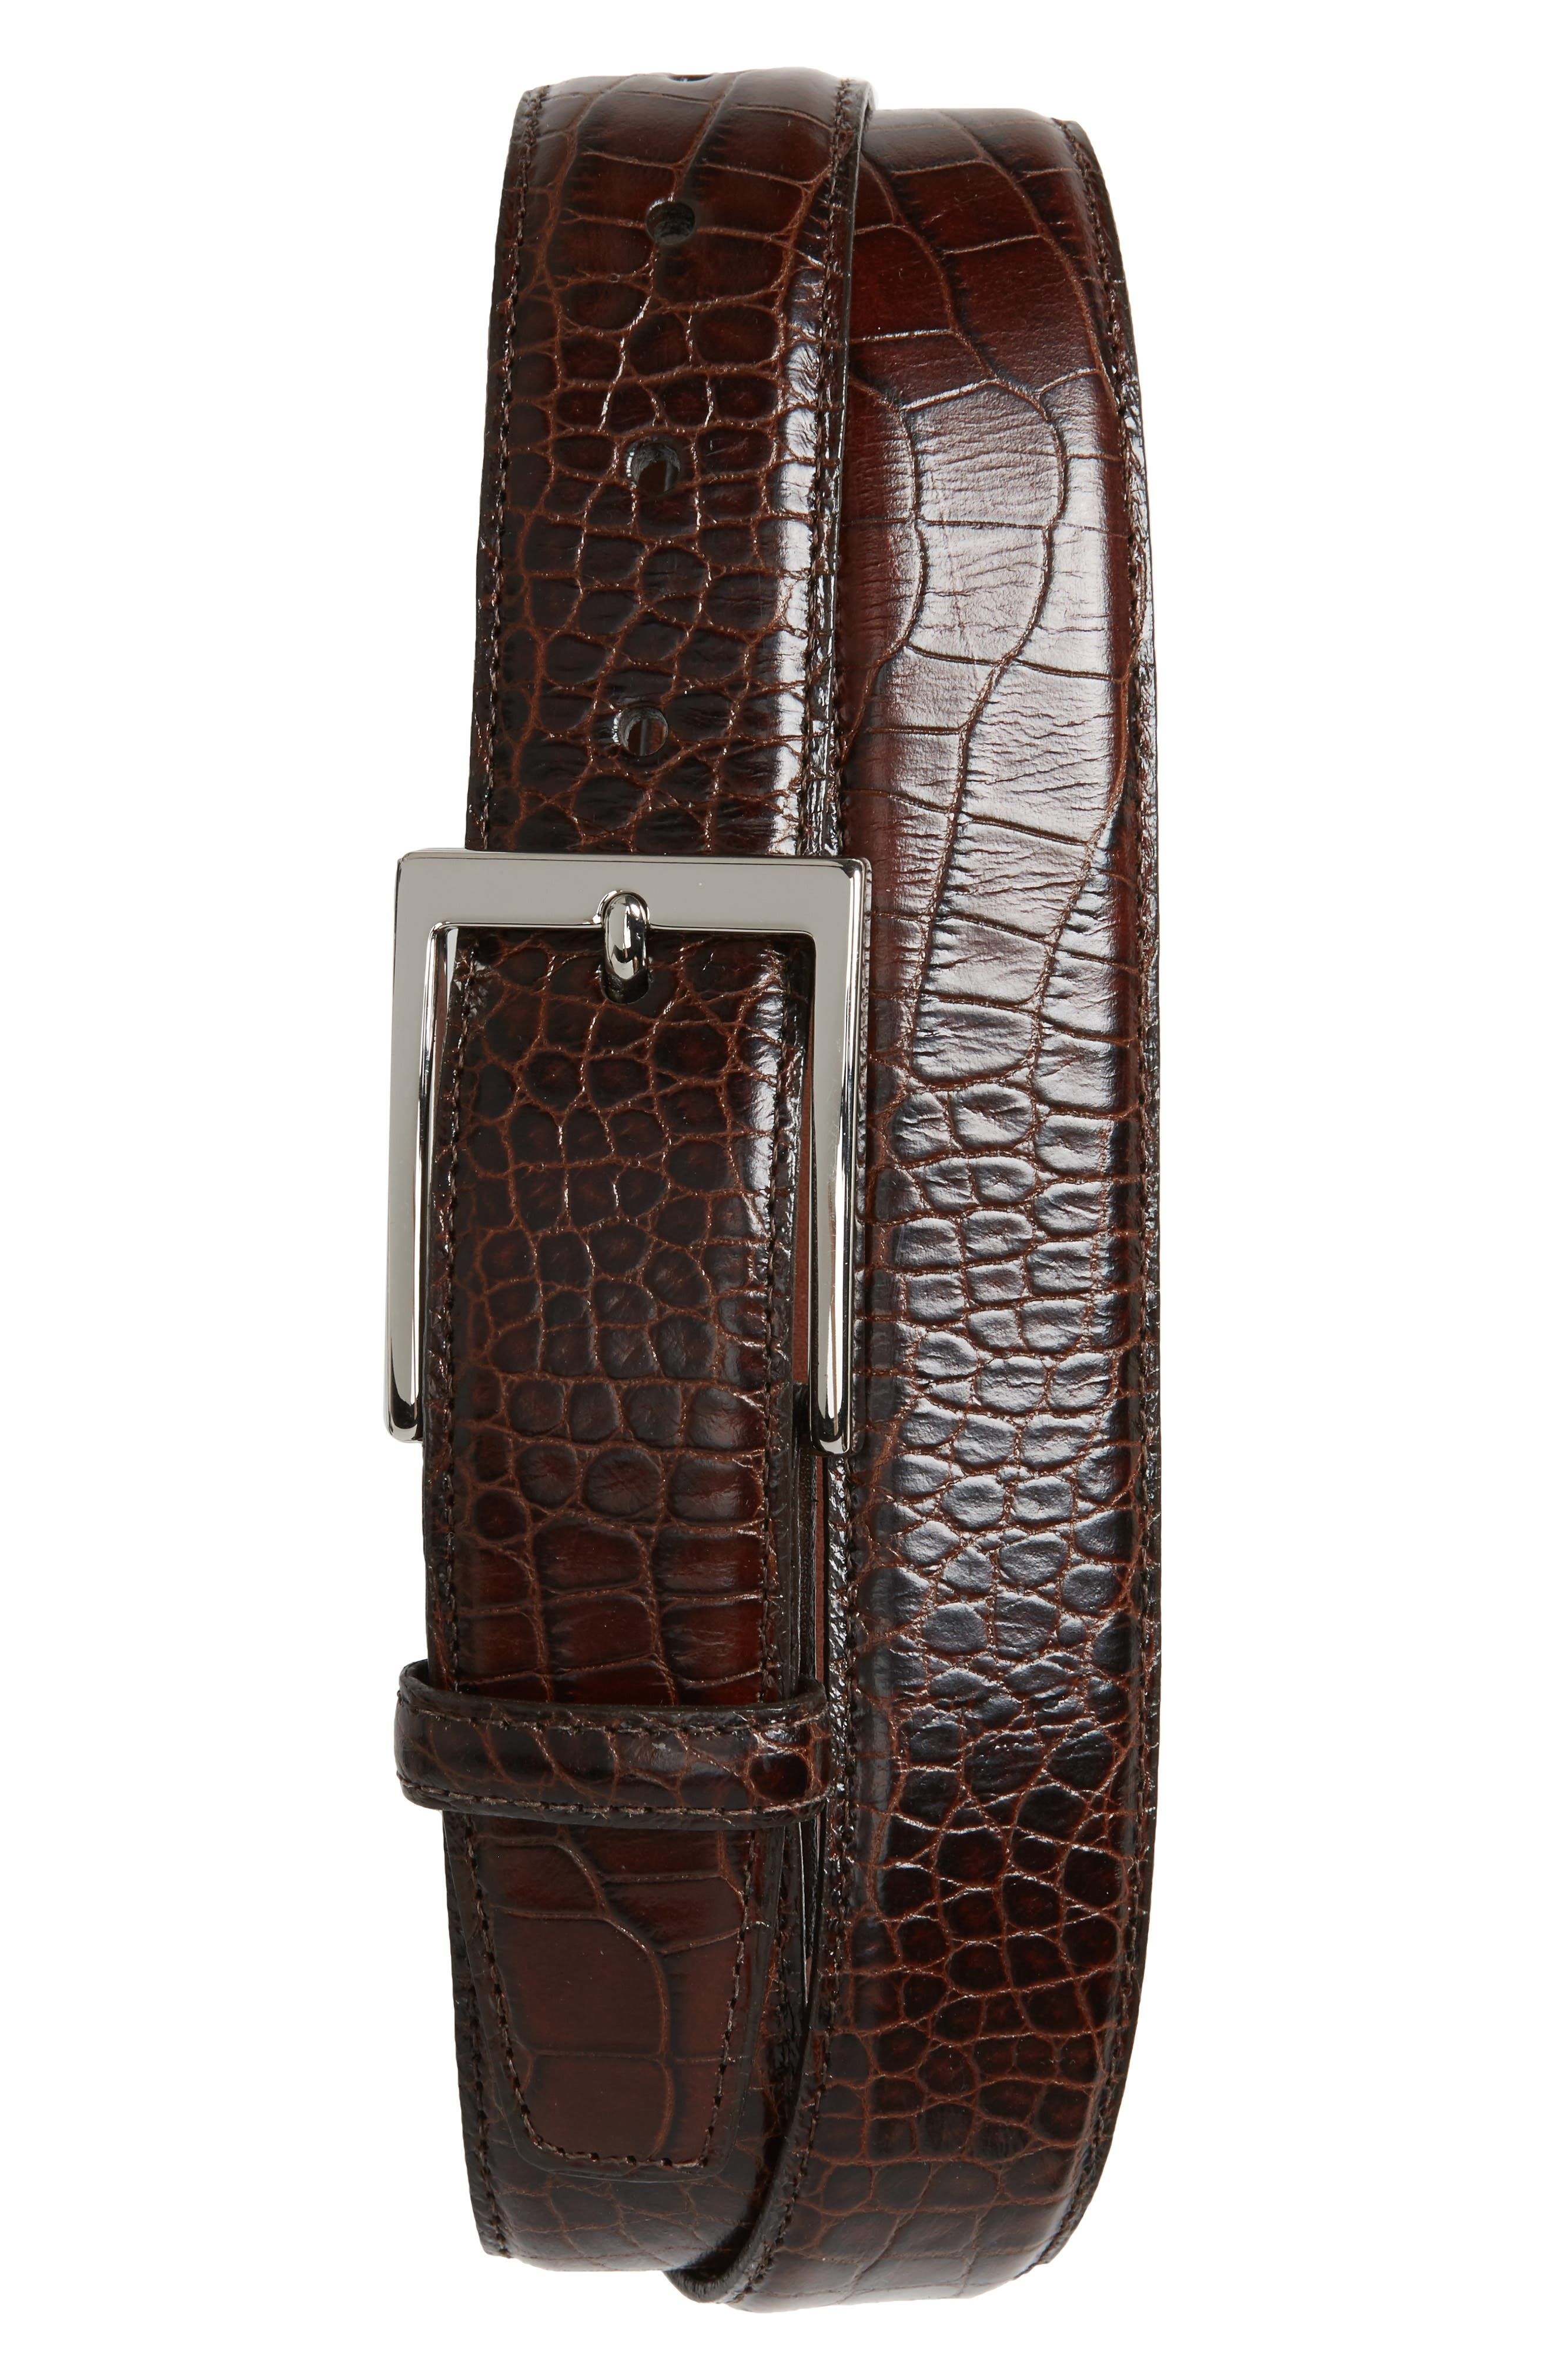 Gator Grain Embossed Leather Belt,                             Main thumbnail 1, color,                             BROWN